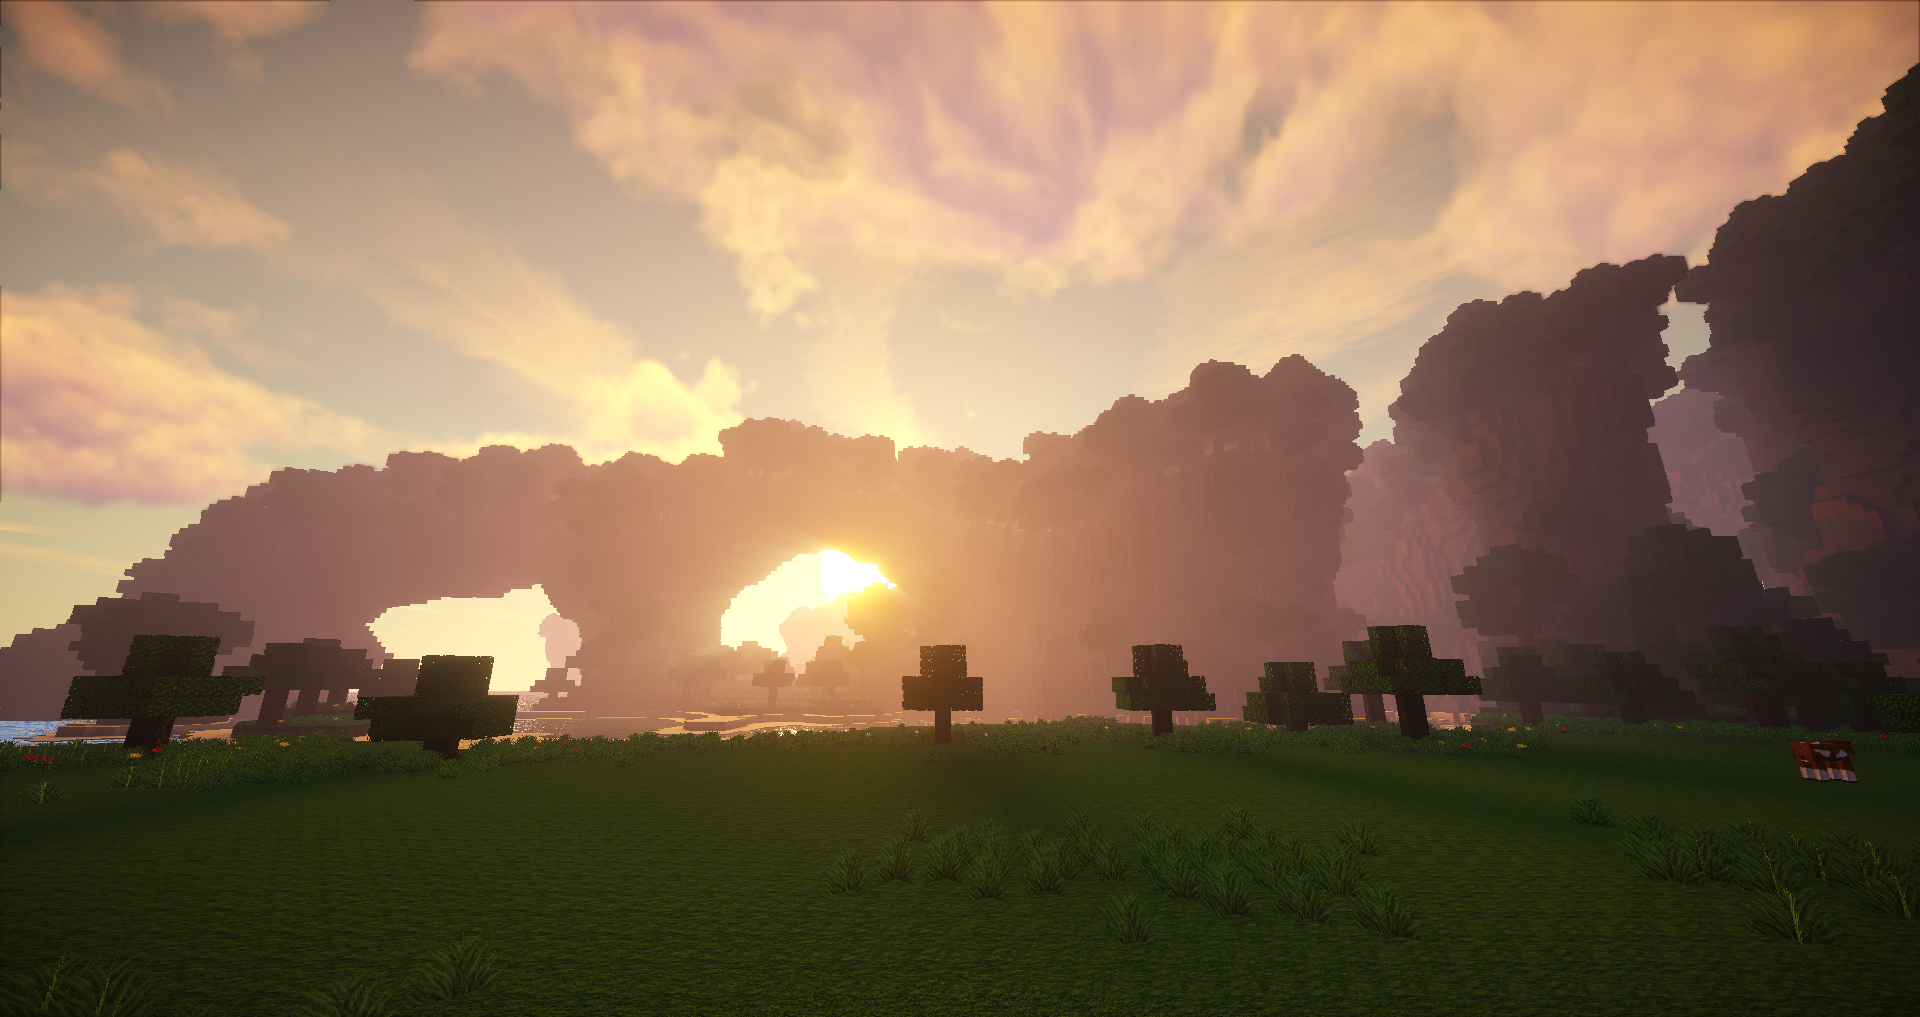 b8a4f503c9 [1.7.10] Continuum Shaders Mod Download